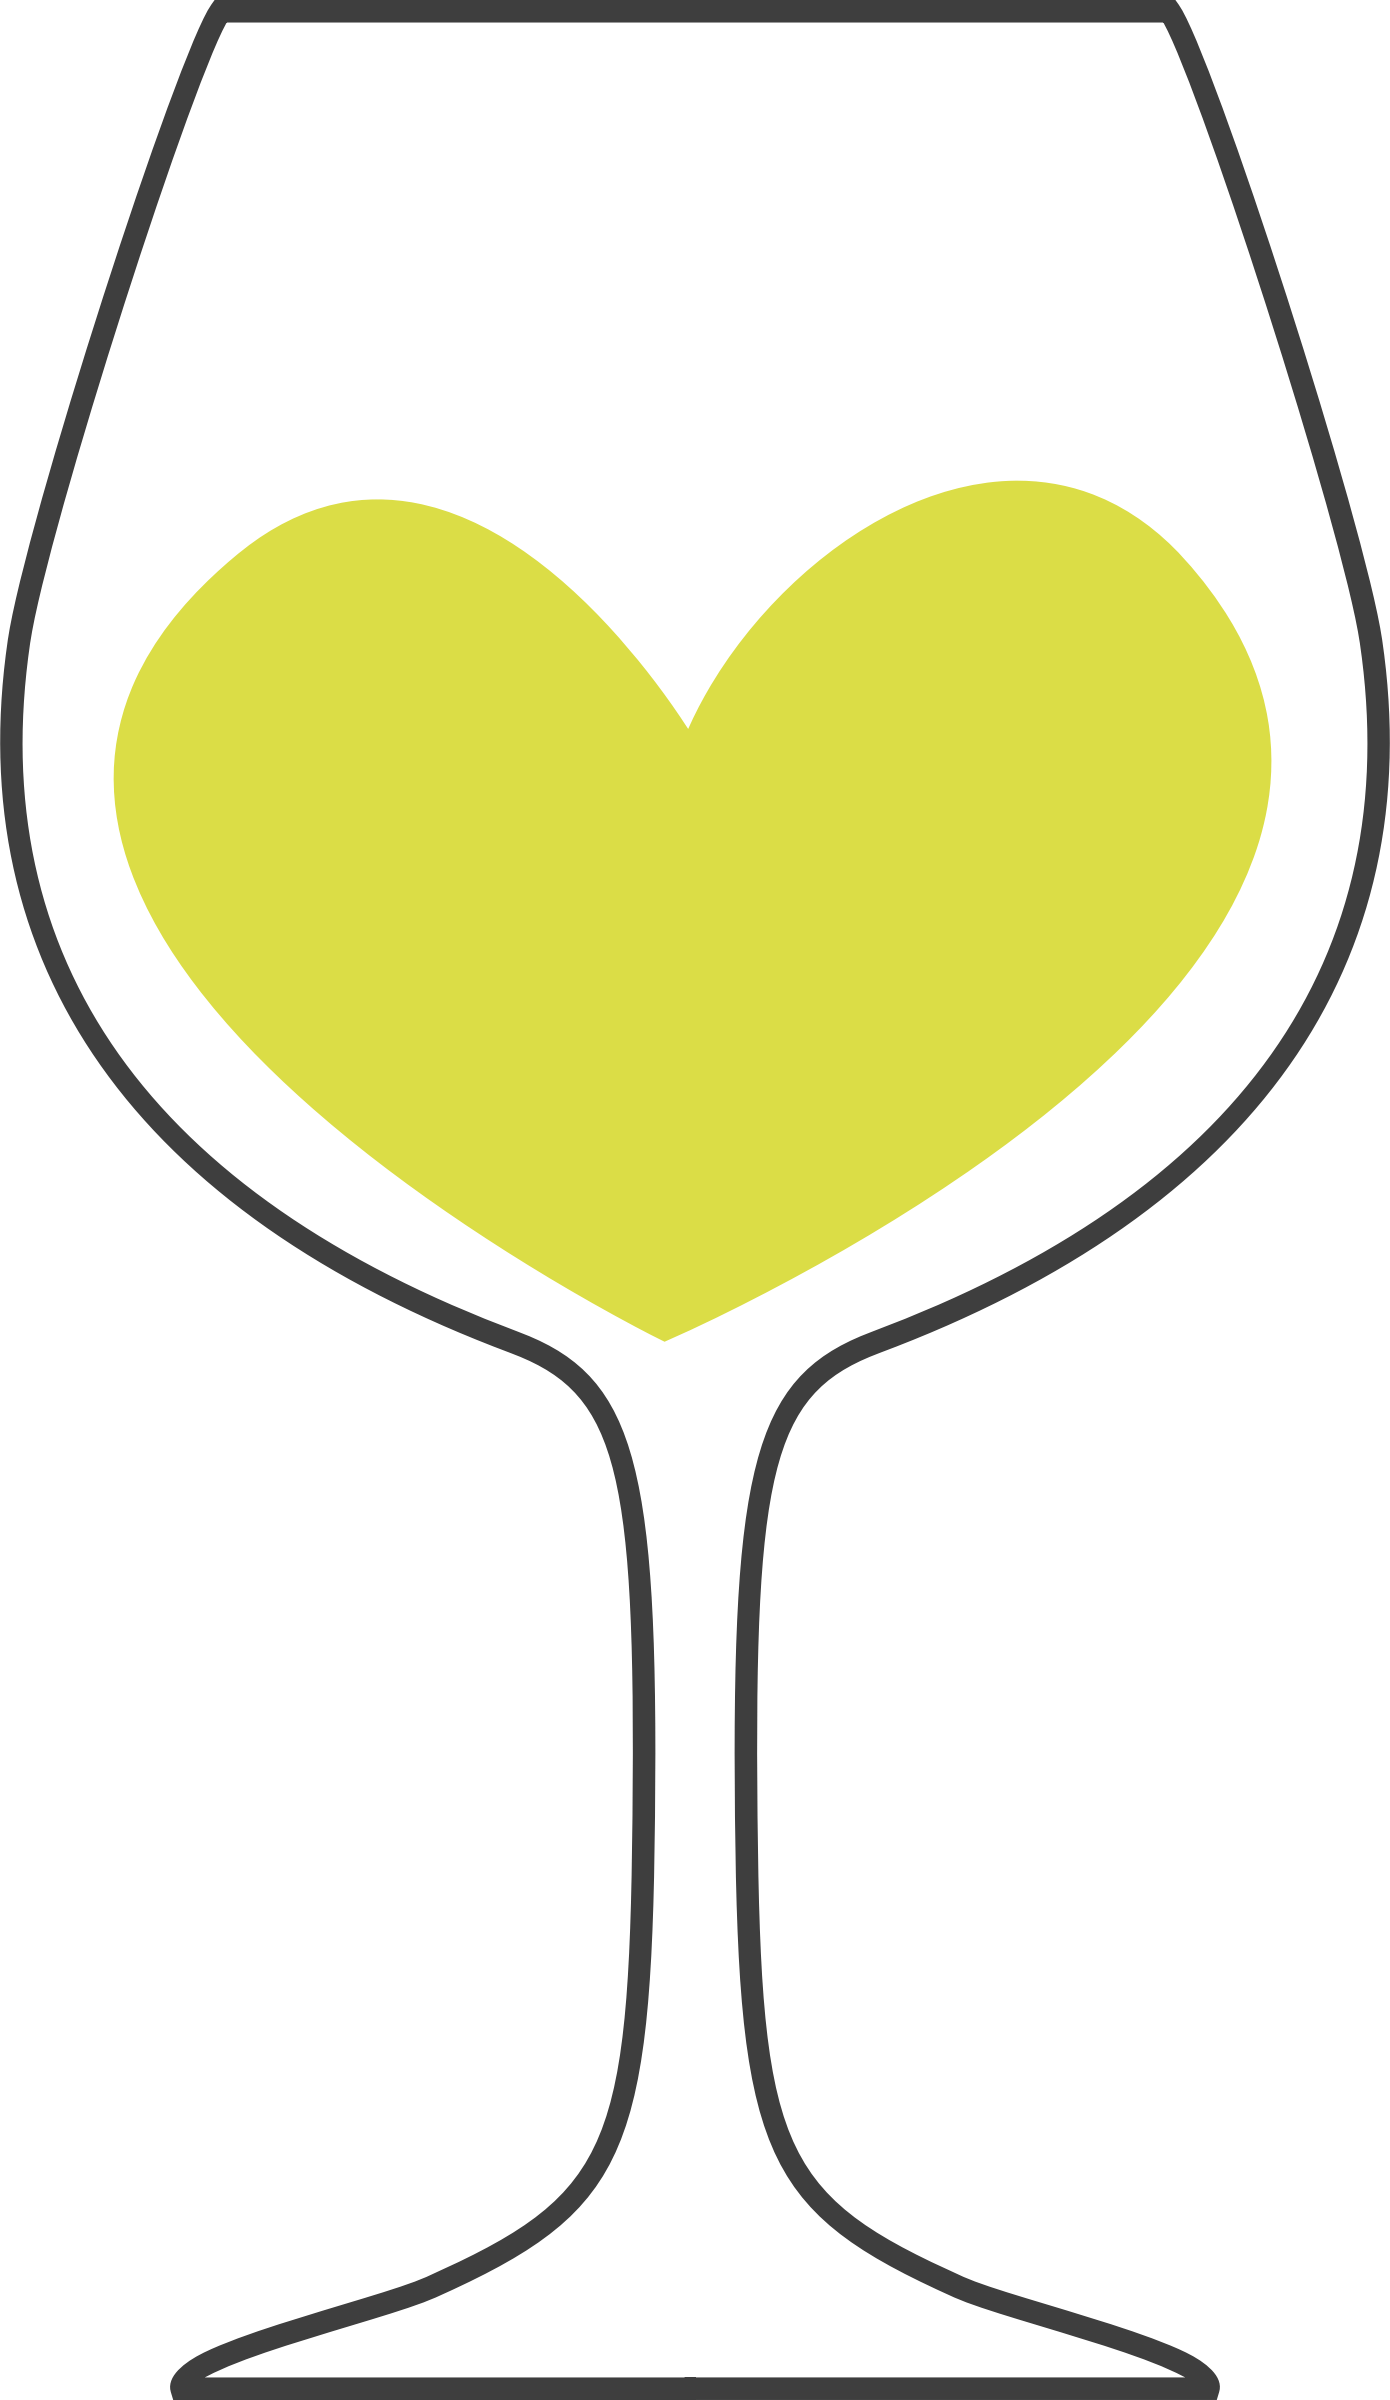 Heart clipart wine, Heart wine Transparent FREE for download.